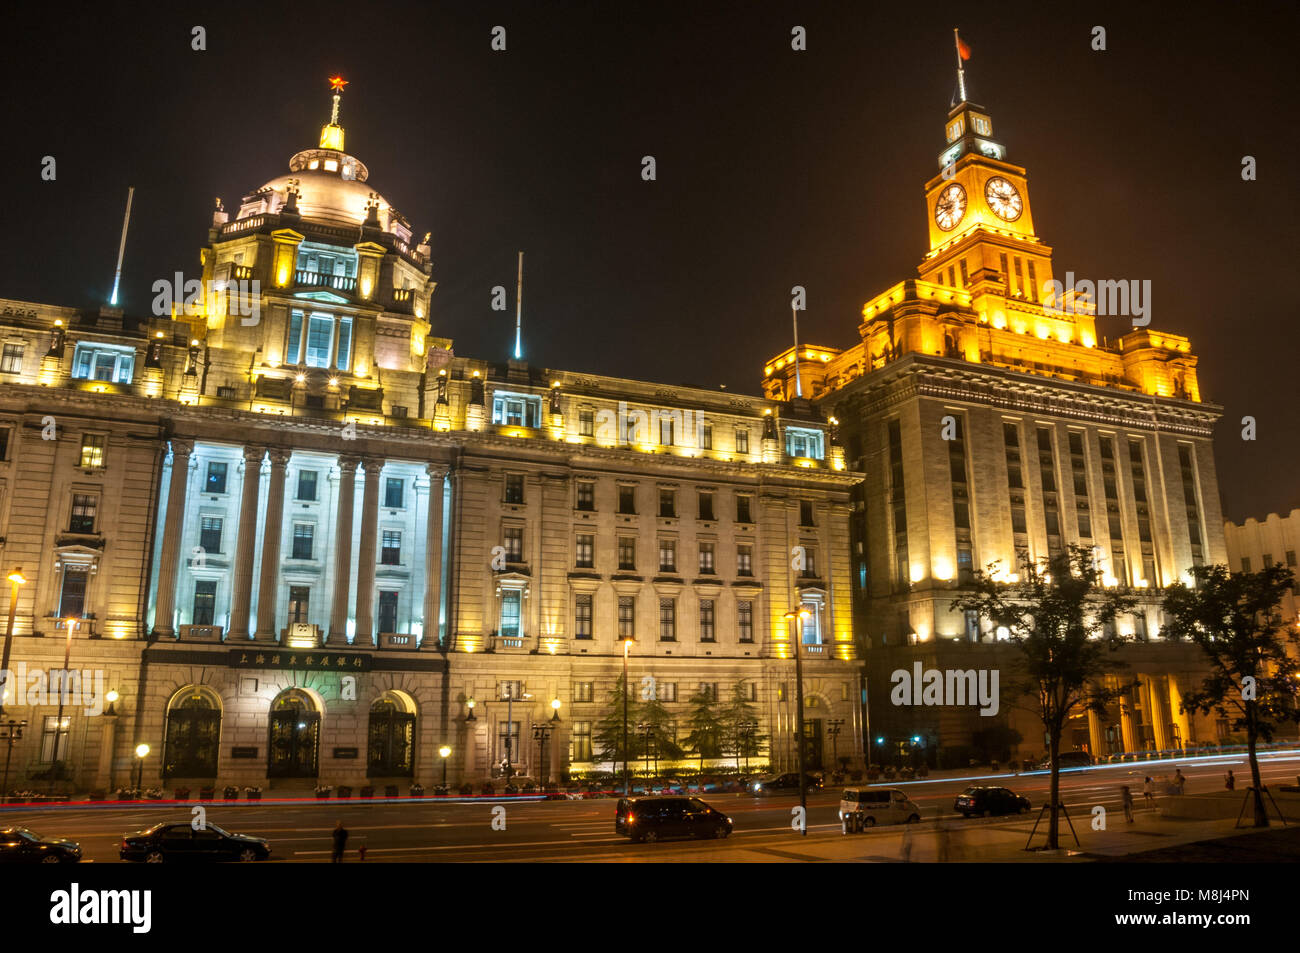 The former Hong Kong & Shanghai Bank and Custom House buildings on Shanghai's historic Bund seen at night from - Stock Image